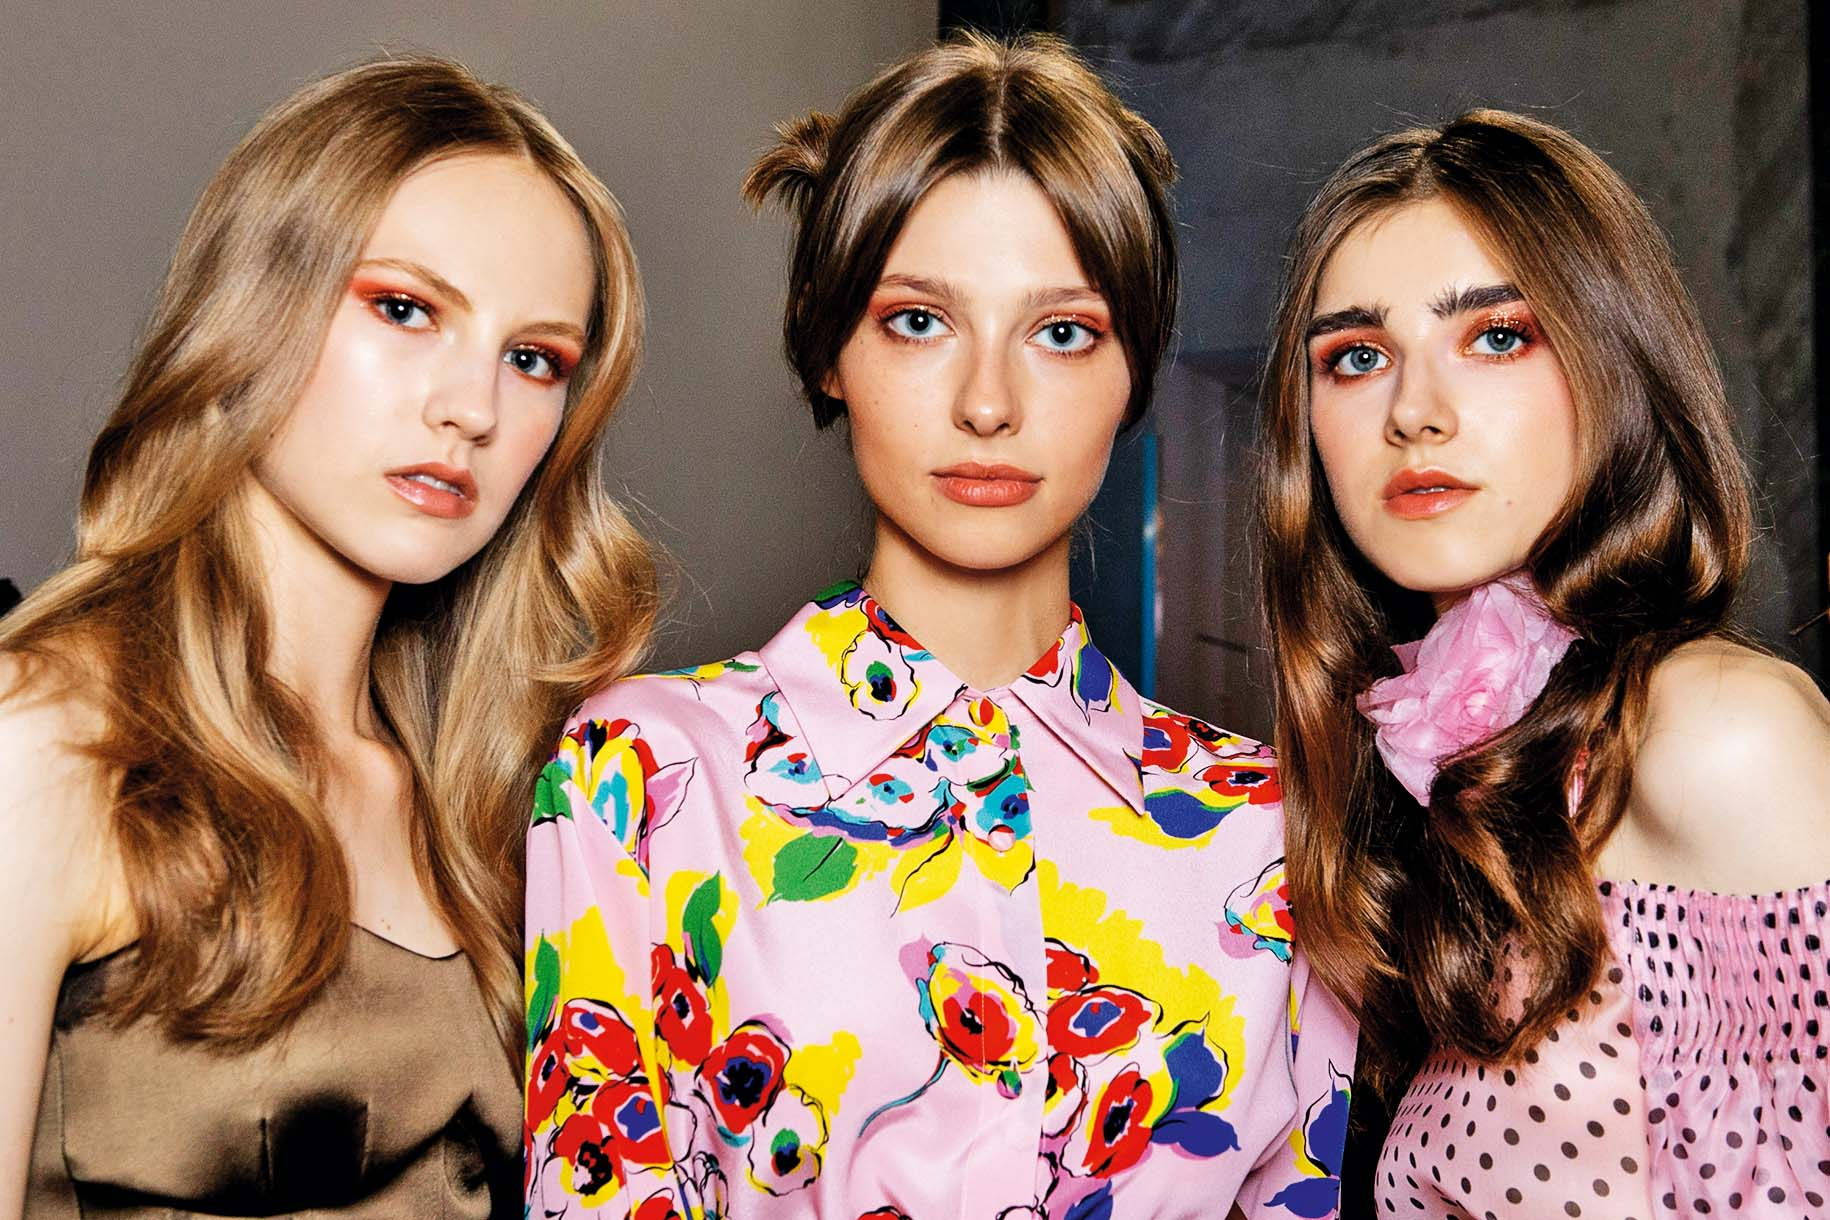 MILAN, ITALY - SEPTEMBER 18:  Models are seen backstage ahead of the Luisa Spagnoli show during Milan Fashion Week Spring/Summer 2019 on September 18, 2018 in Milan, Italy.  (Photo by Rosdiana Ciaravolo/Getty Images)